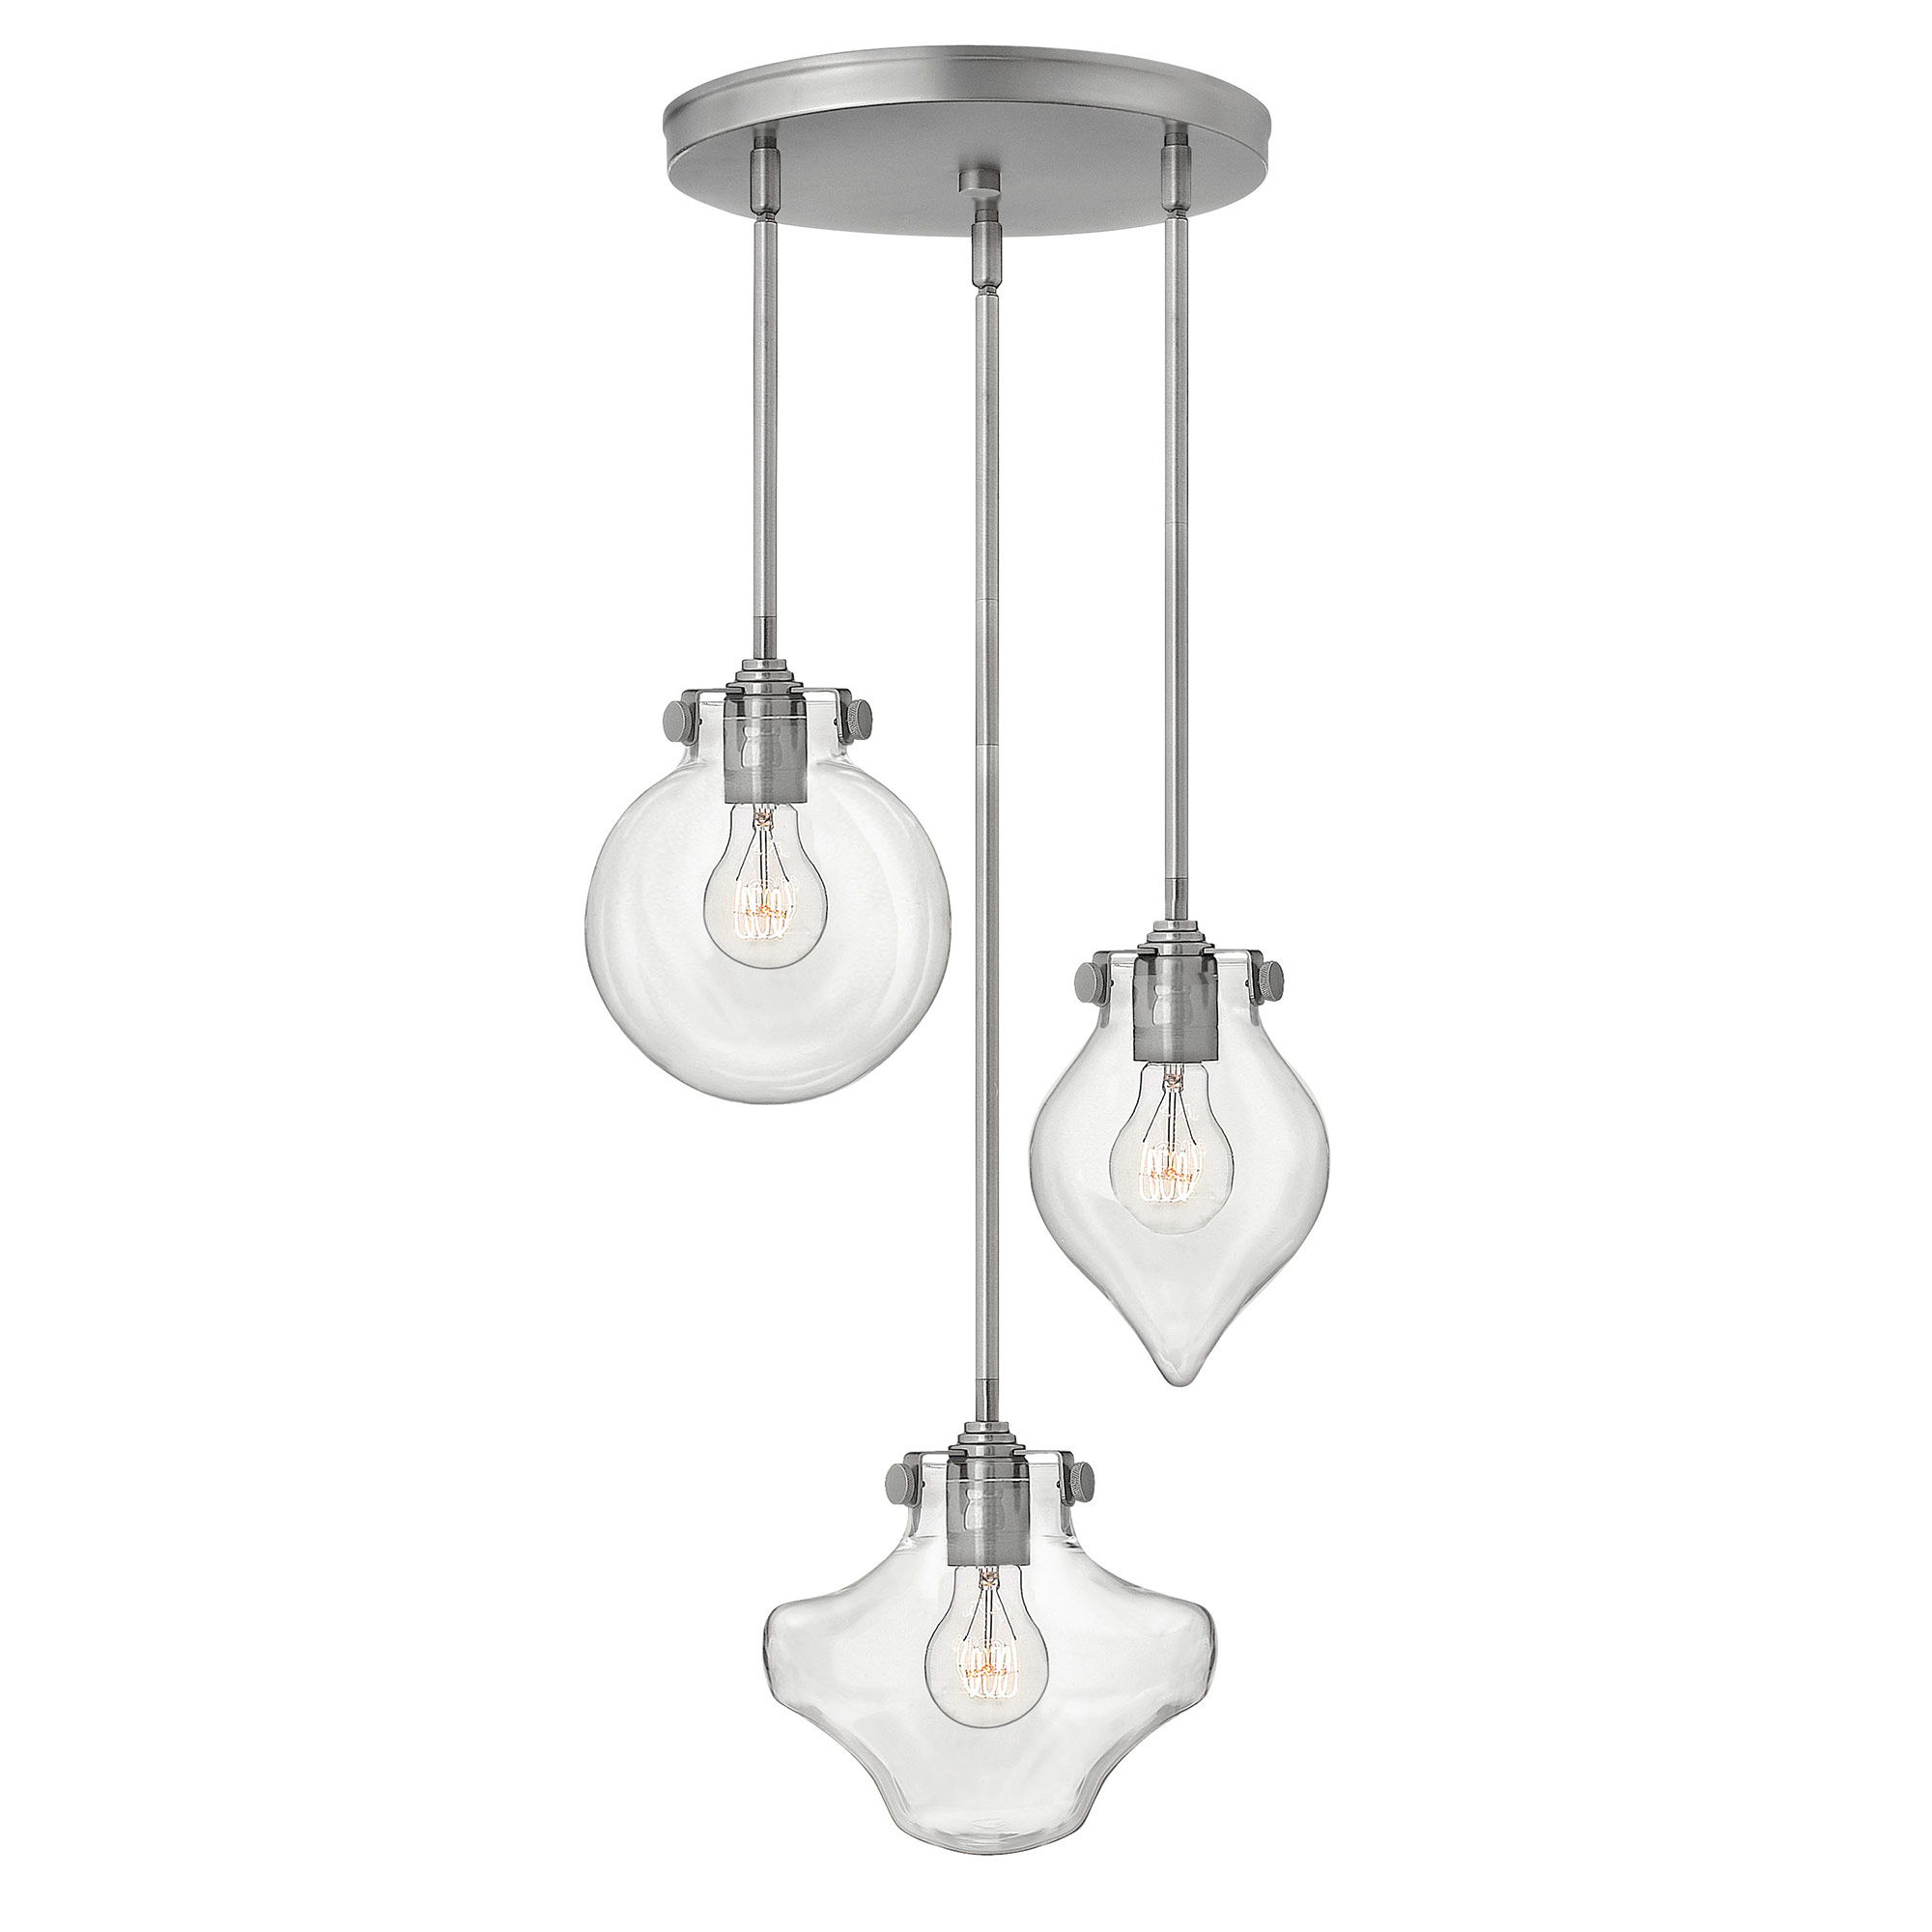 Congress multi light pendant by hinkley lighting 3198an aloadofball